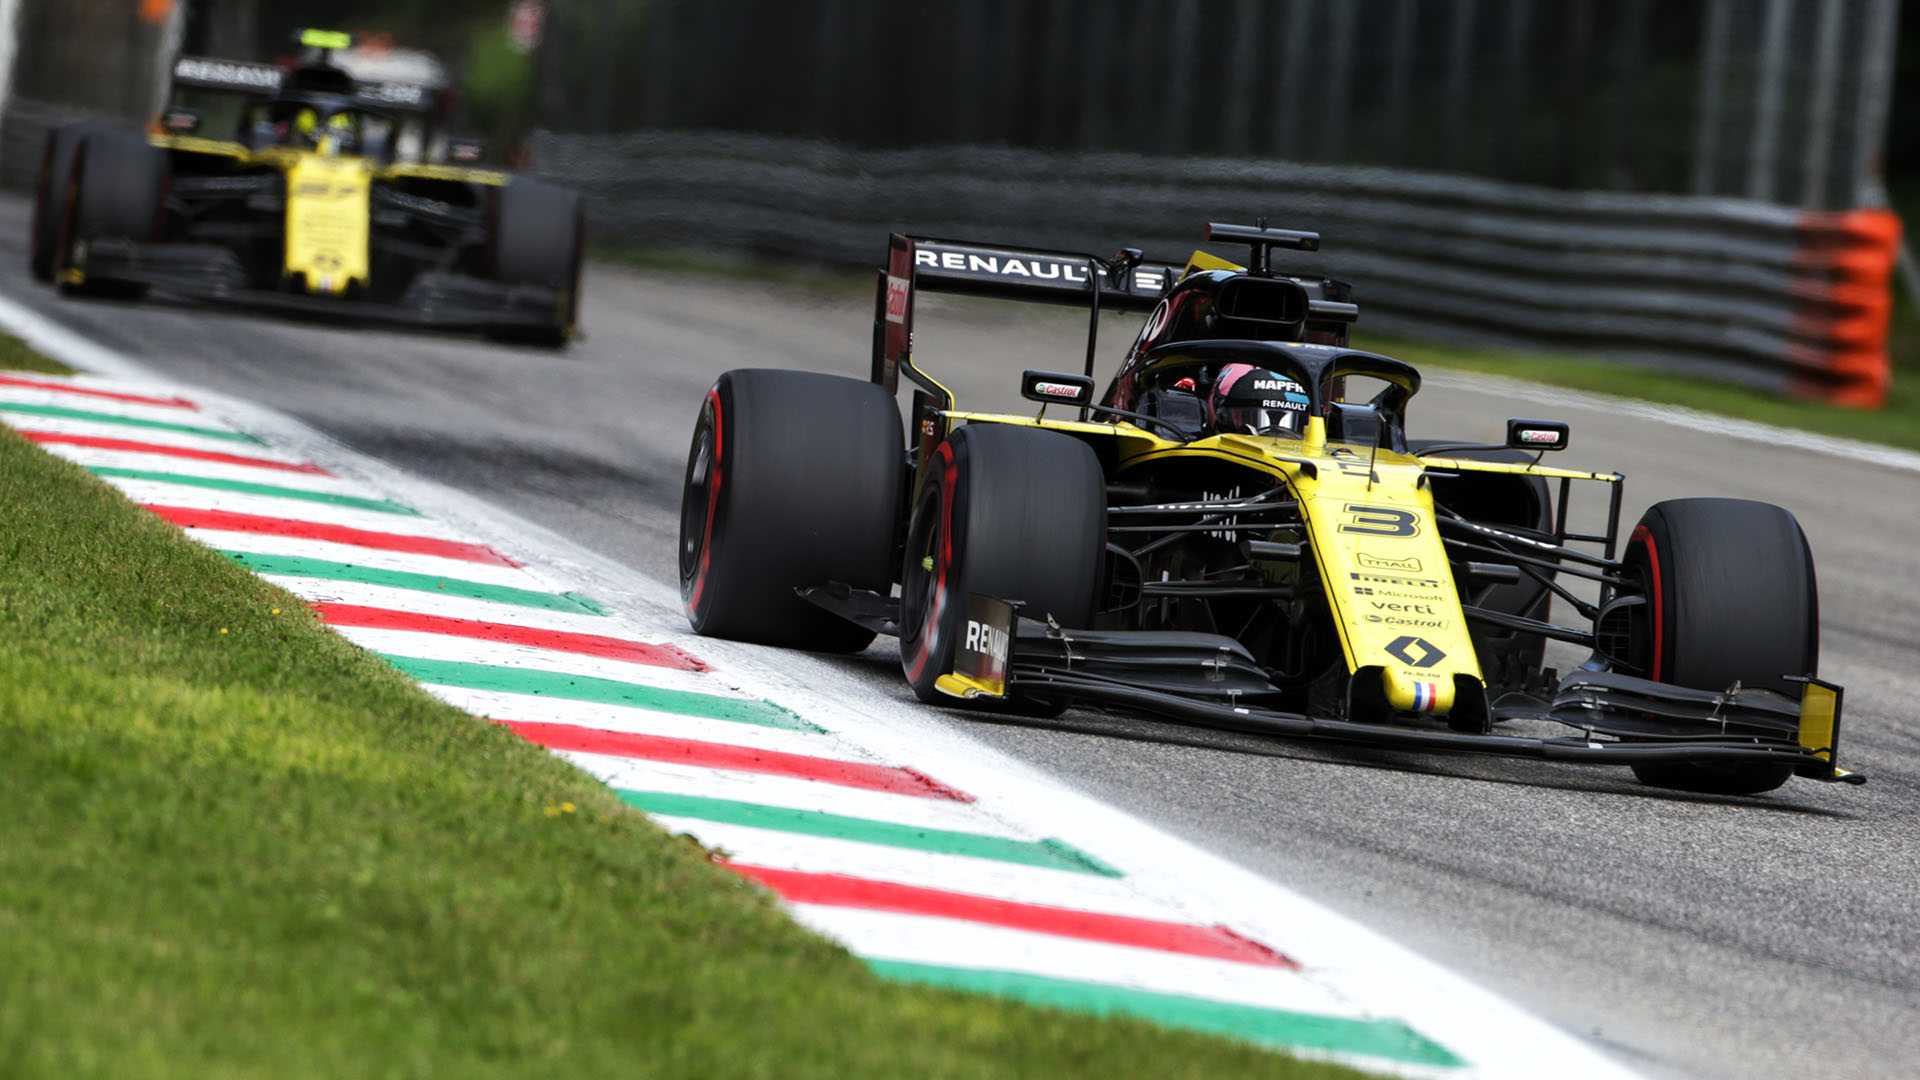 Ricciardo: Renault performance at power-hungry Monza 'a real